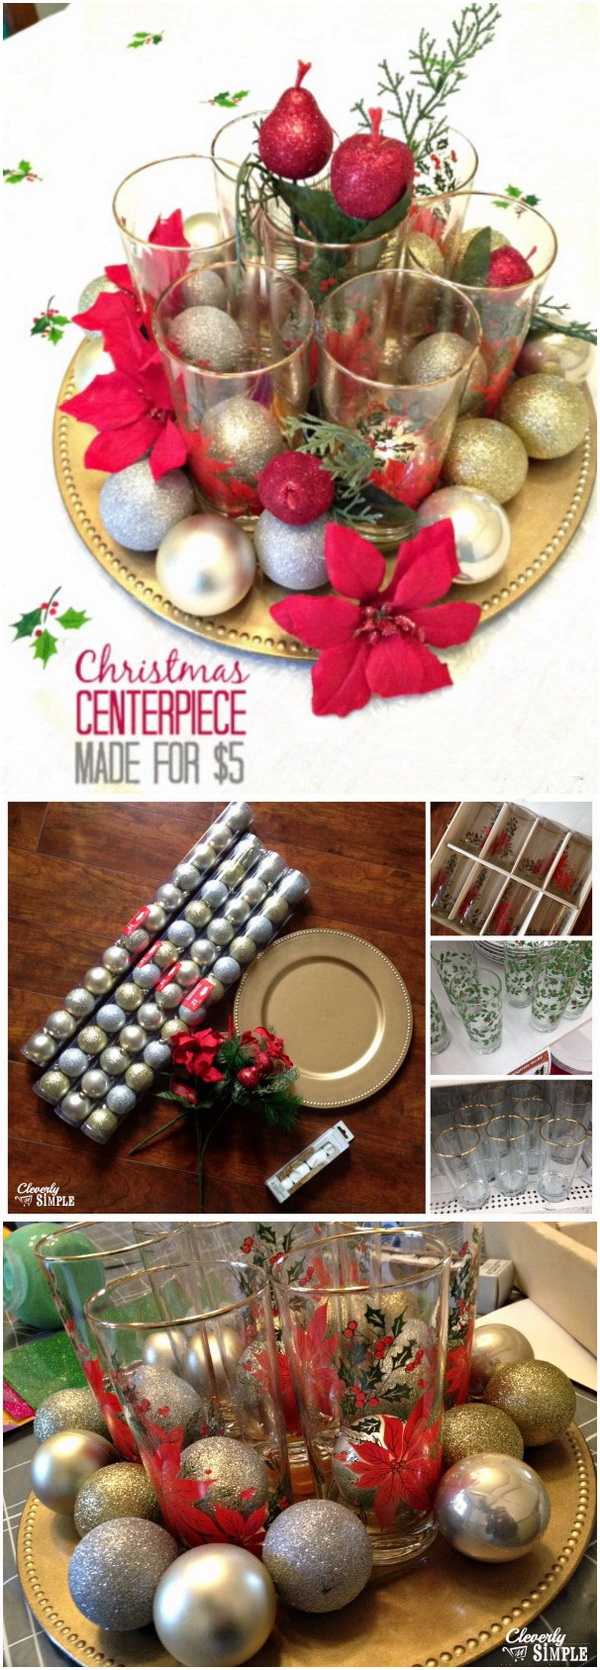 Meaningful Christmas Centerpiece For $5 & 70+ DIY Dollar Store Christmas Decor Ideas - For Creative Juice